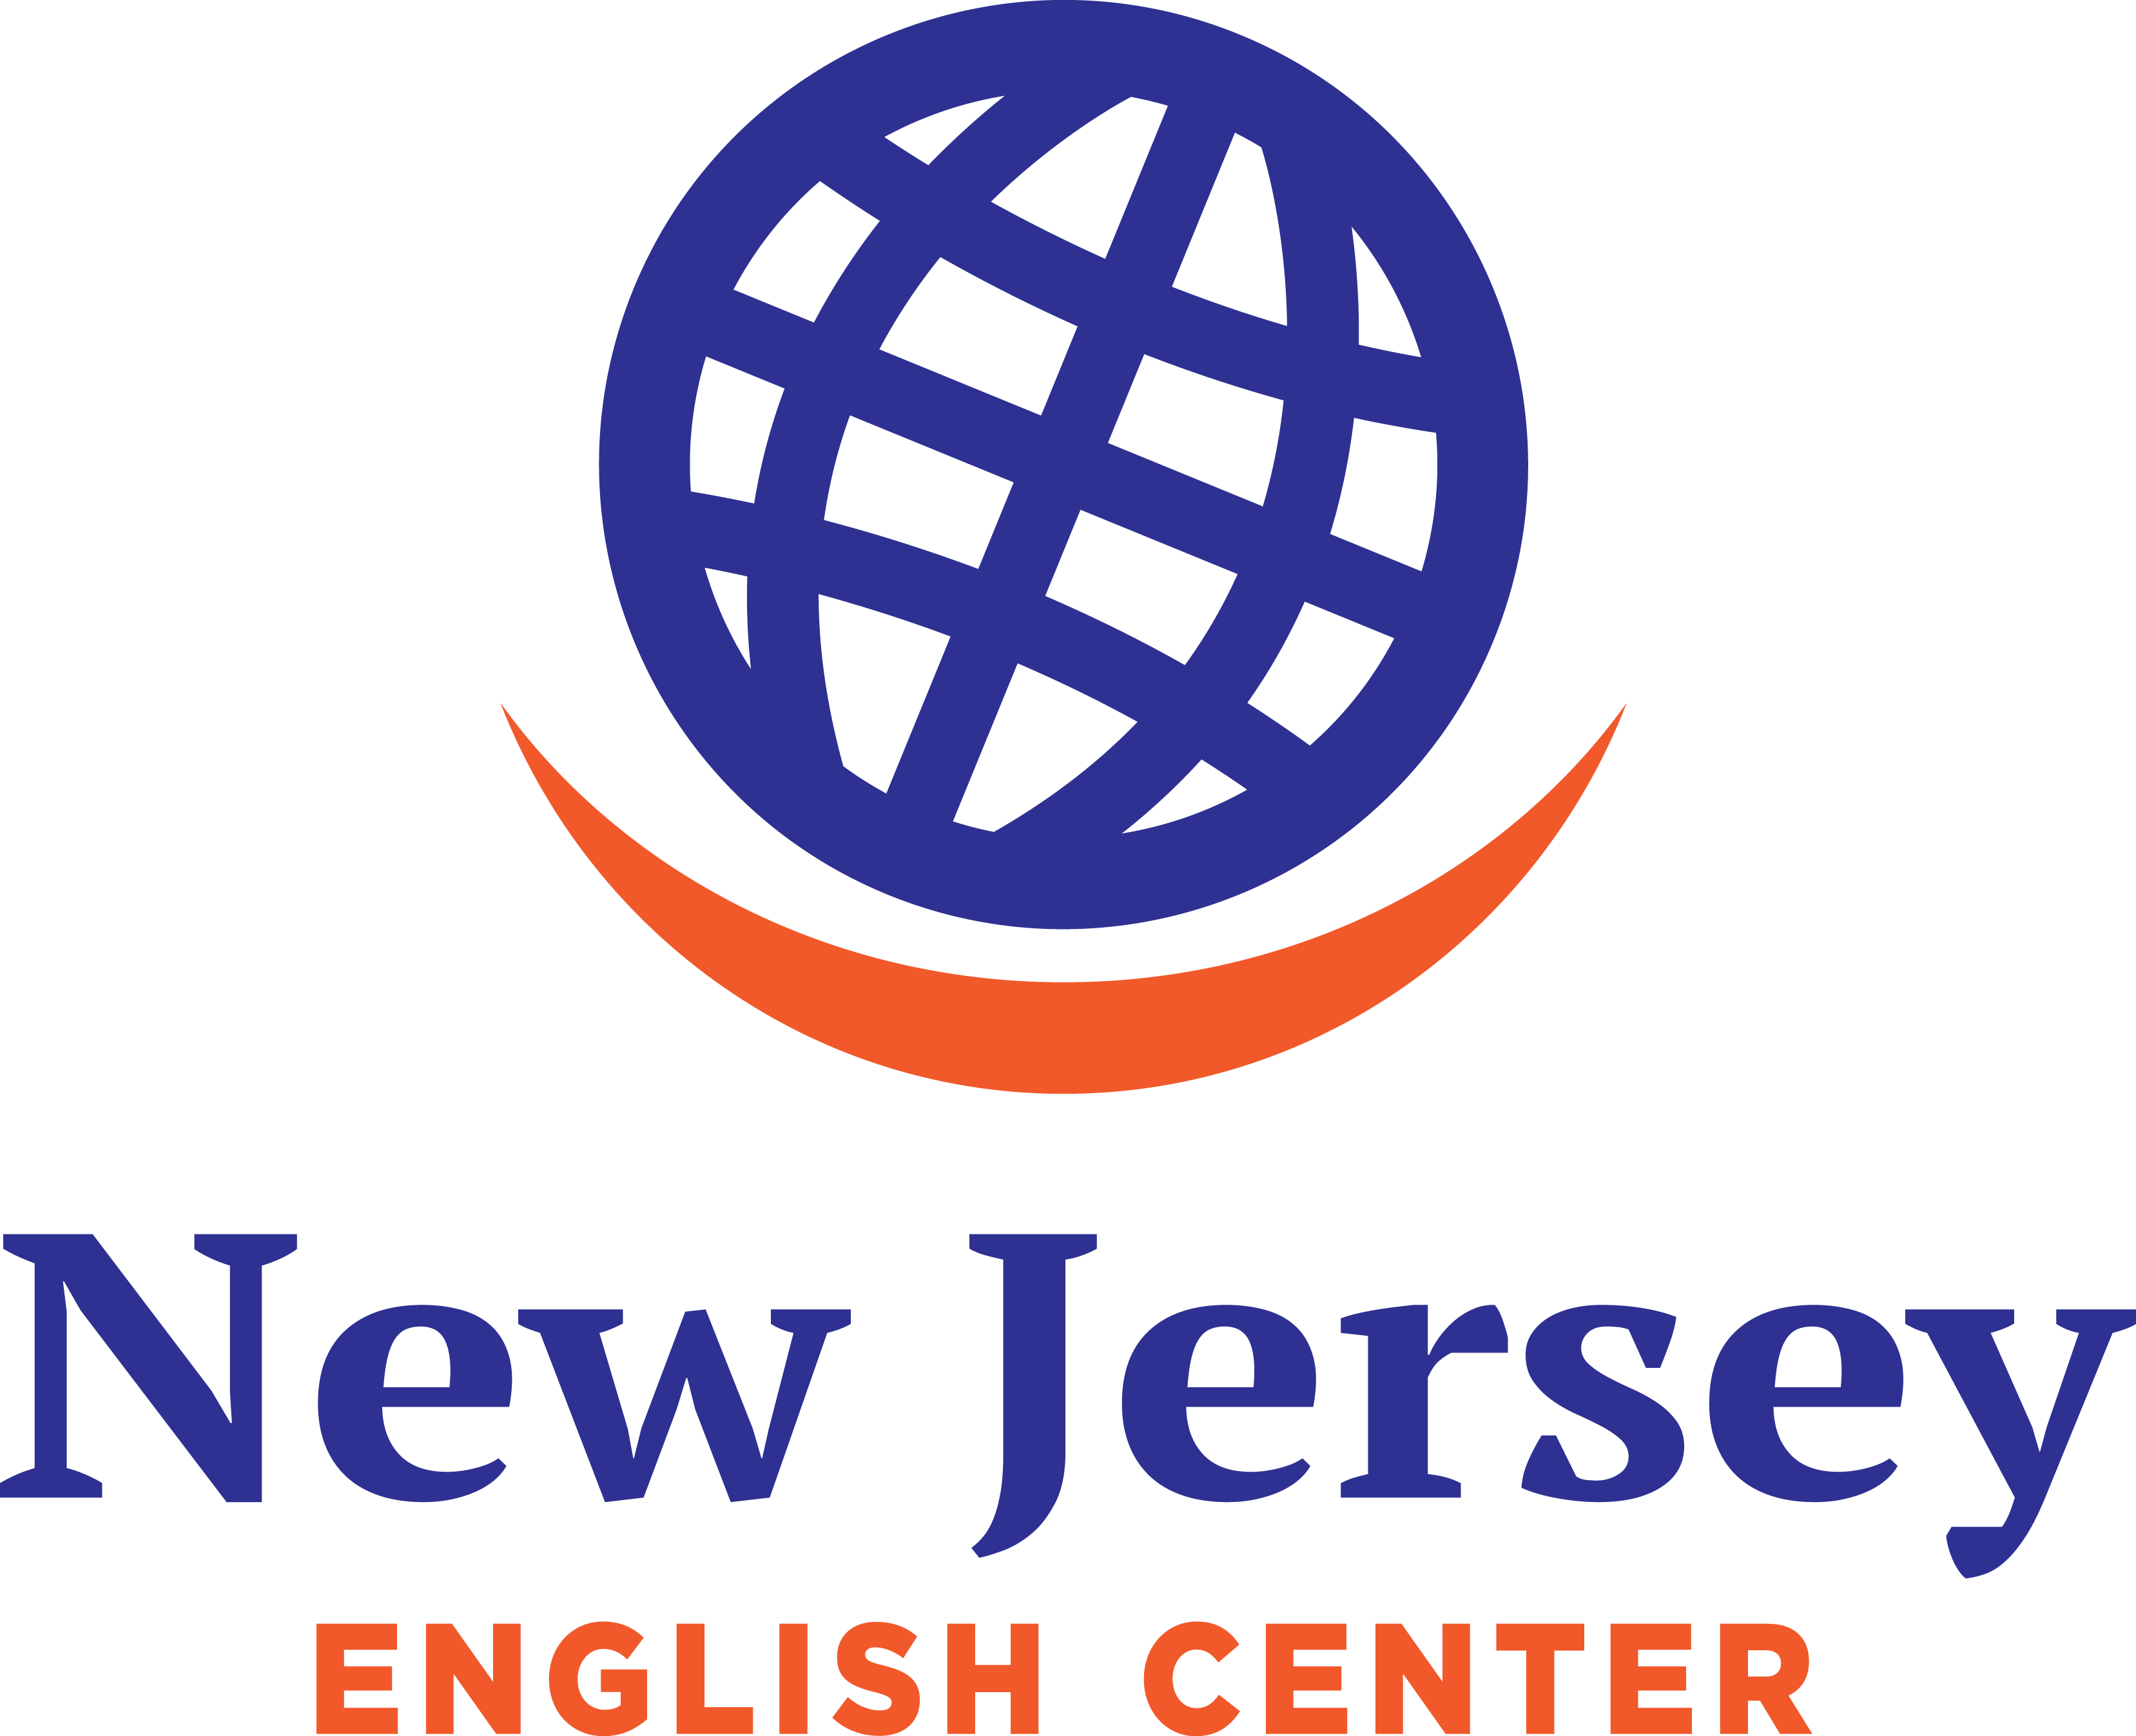 New York English Center